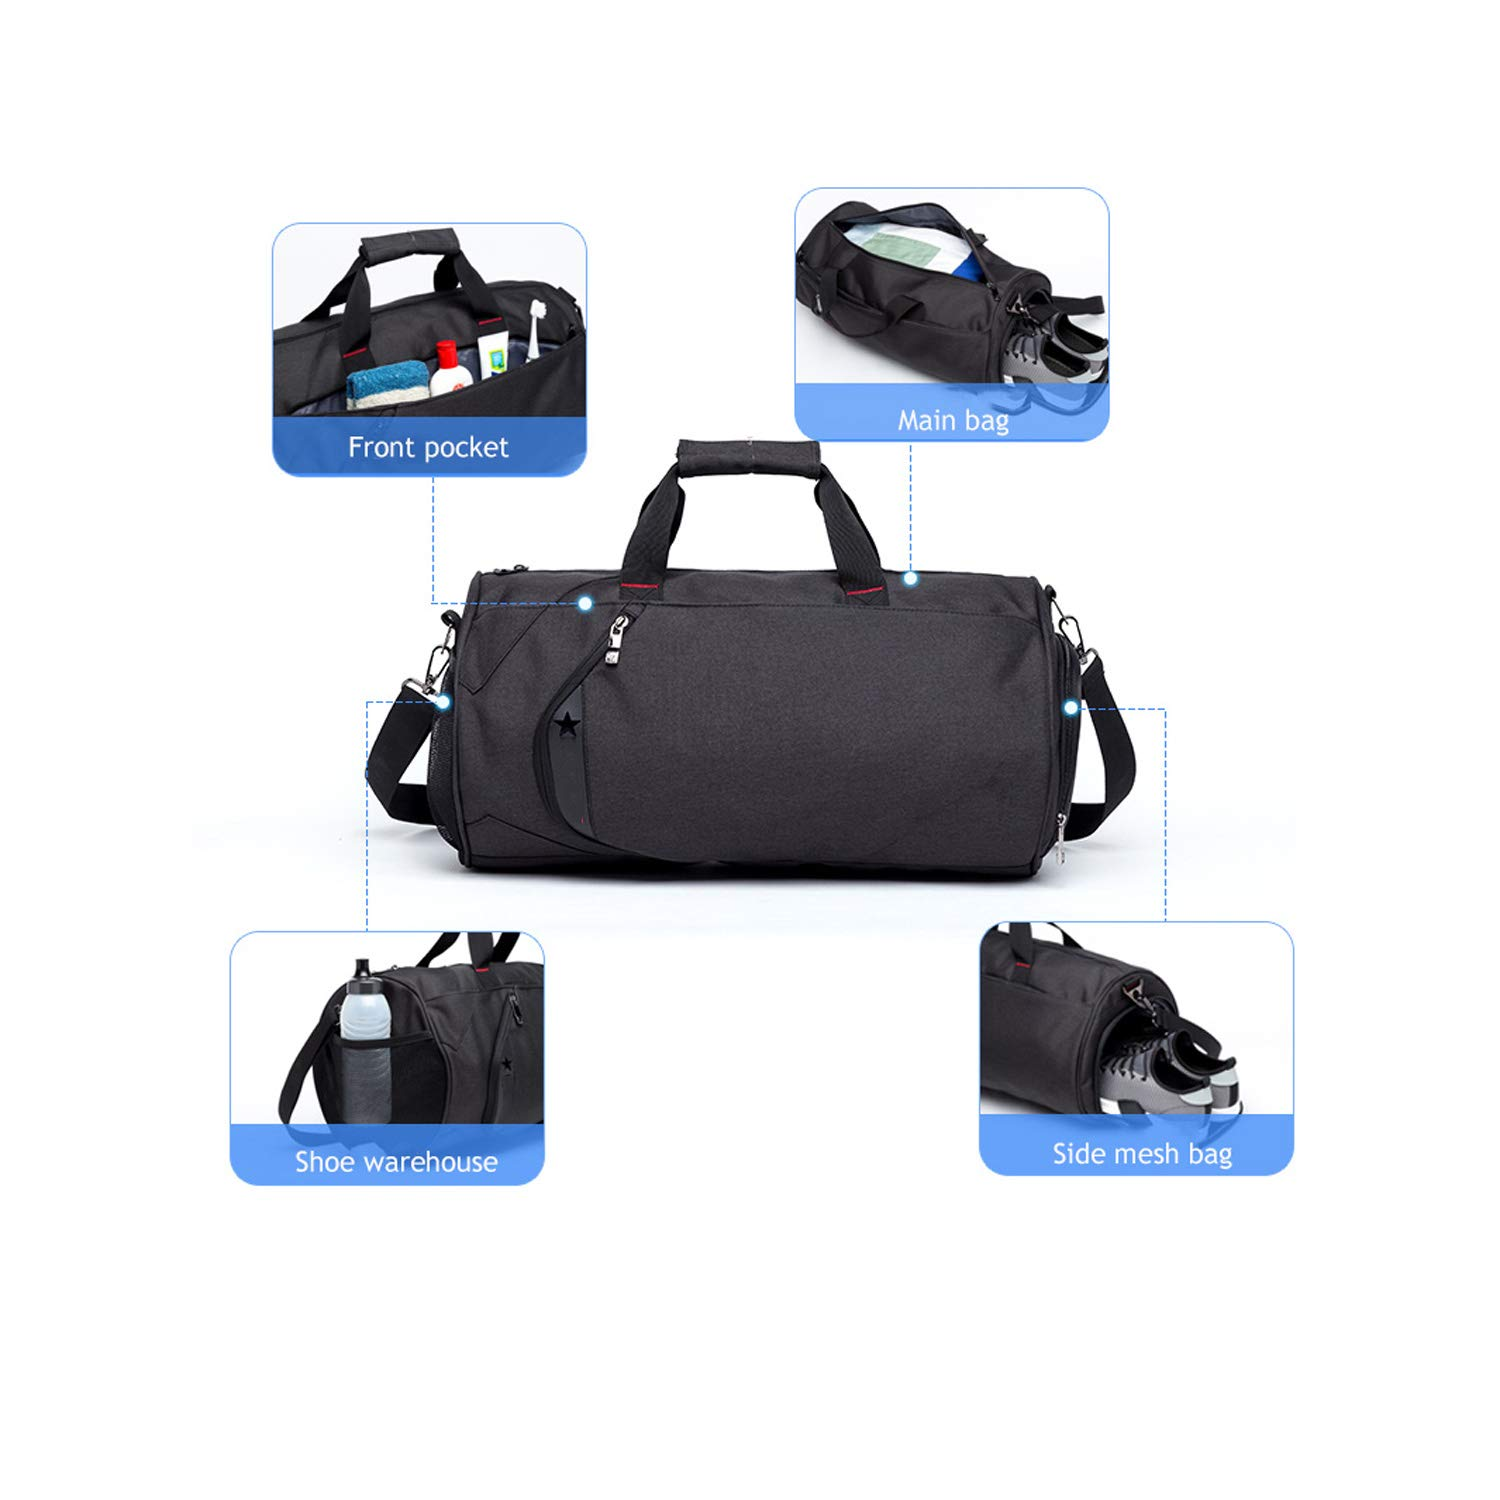 Nosterappou Men and Women Fashion Casual Dry and Wet Separation Fitness Sports Bag Large Capacity Travel Travel Diagonal Training Package Swimming Bag Independent Shoe Warehouse